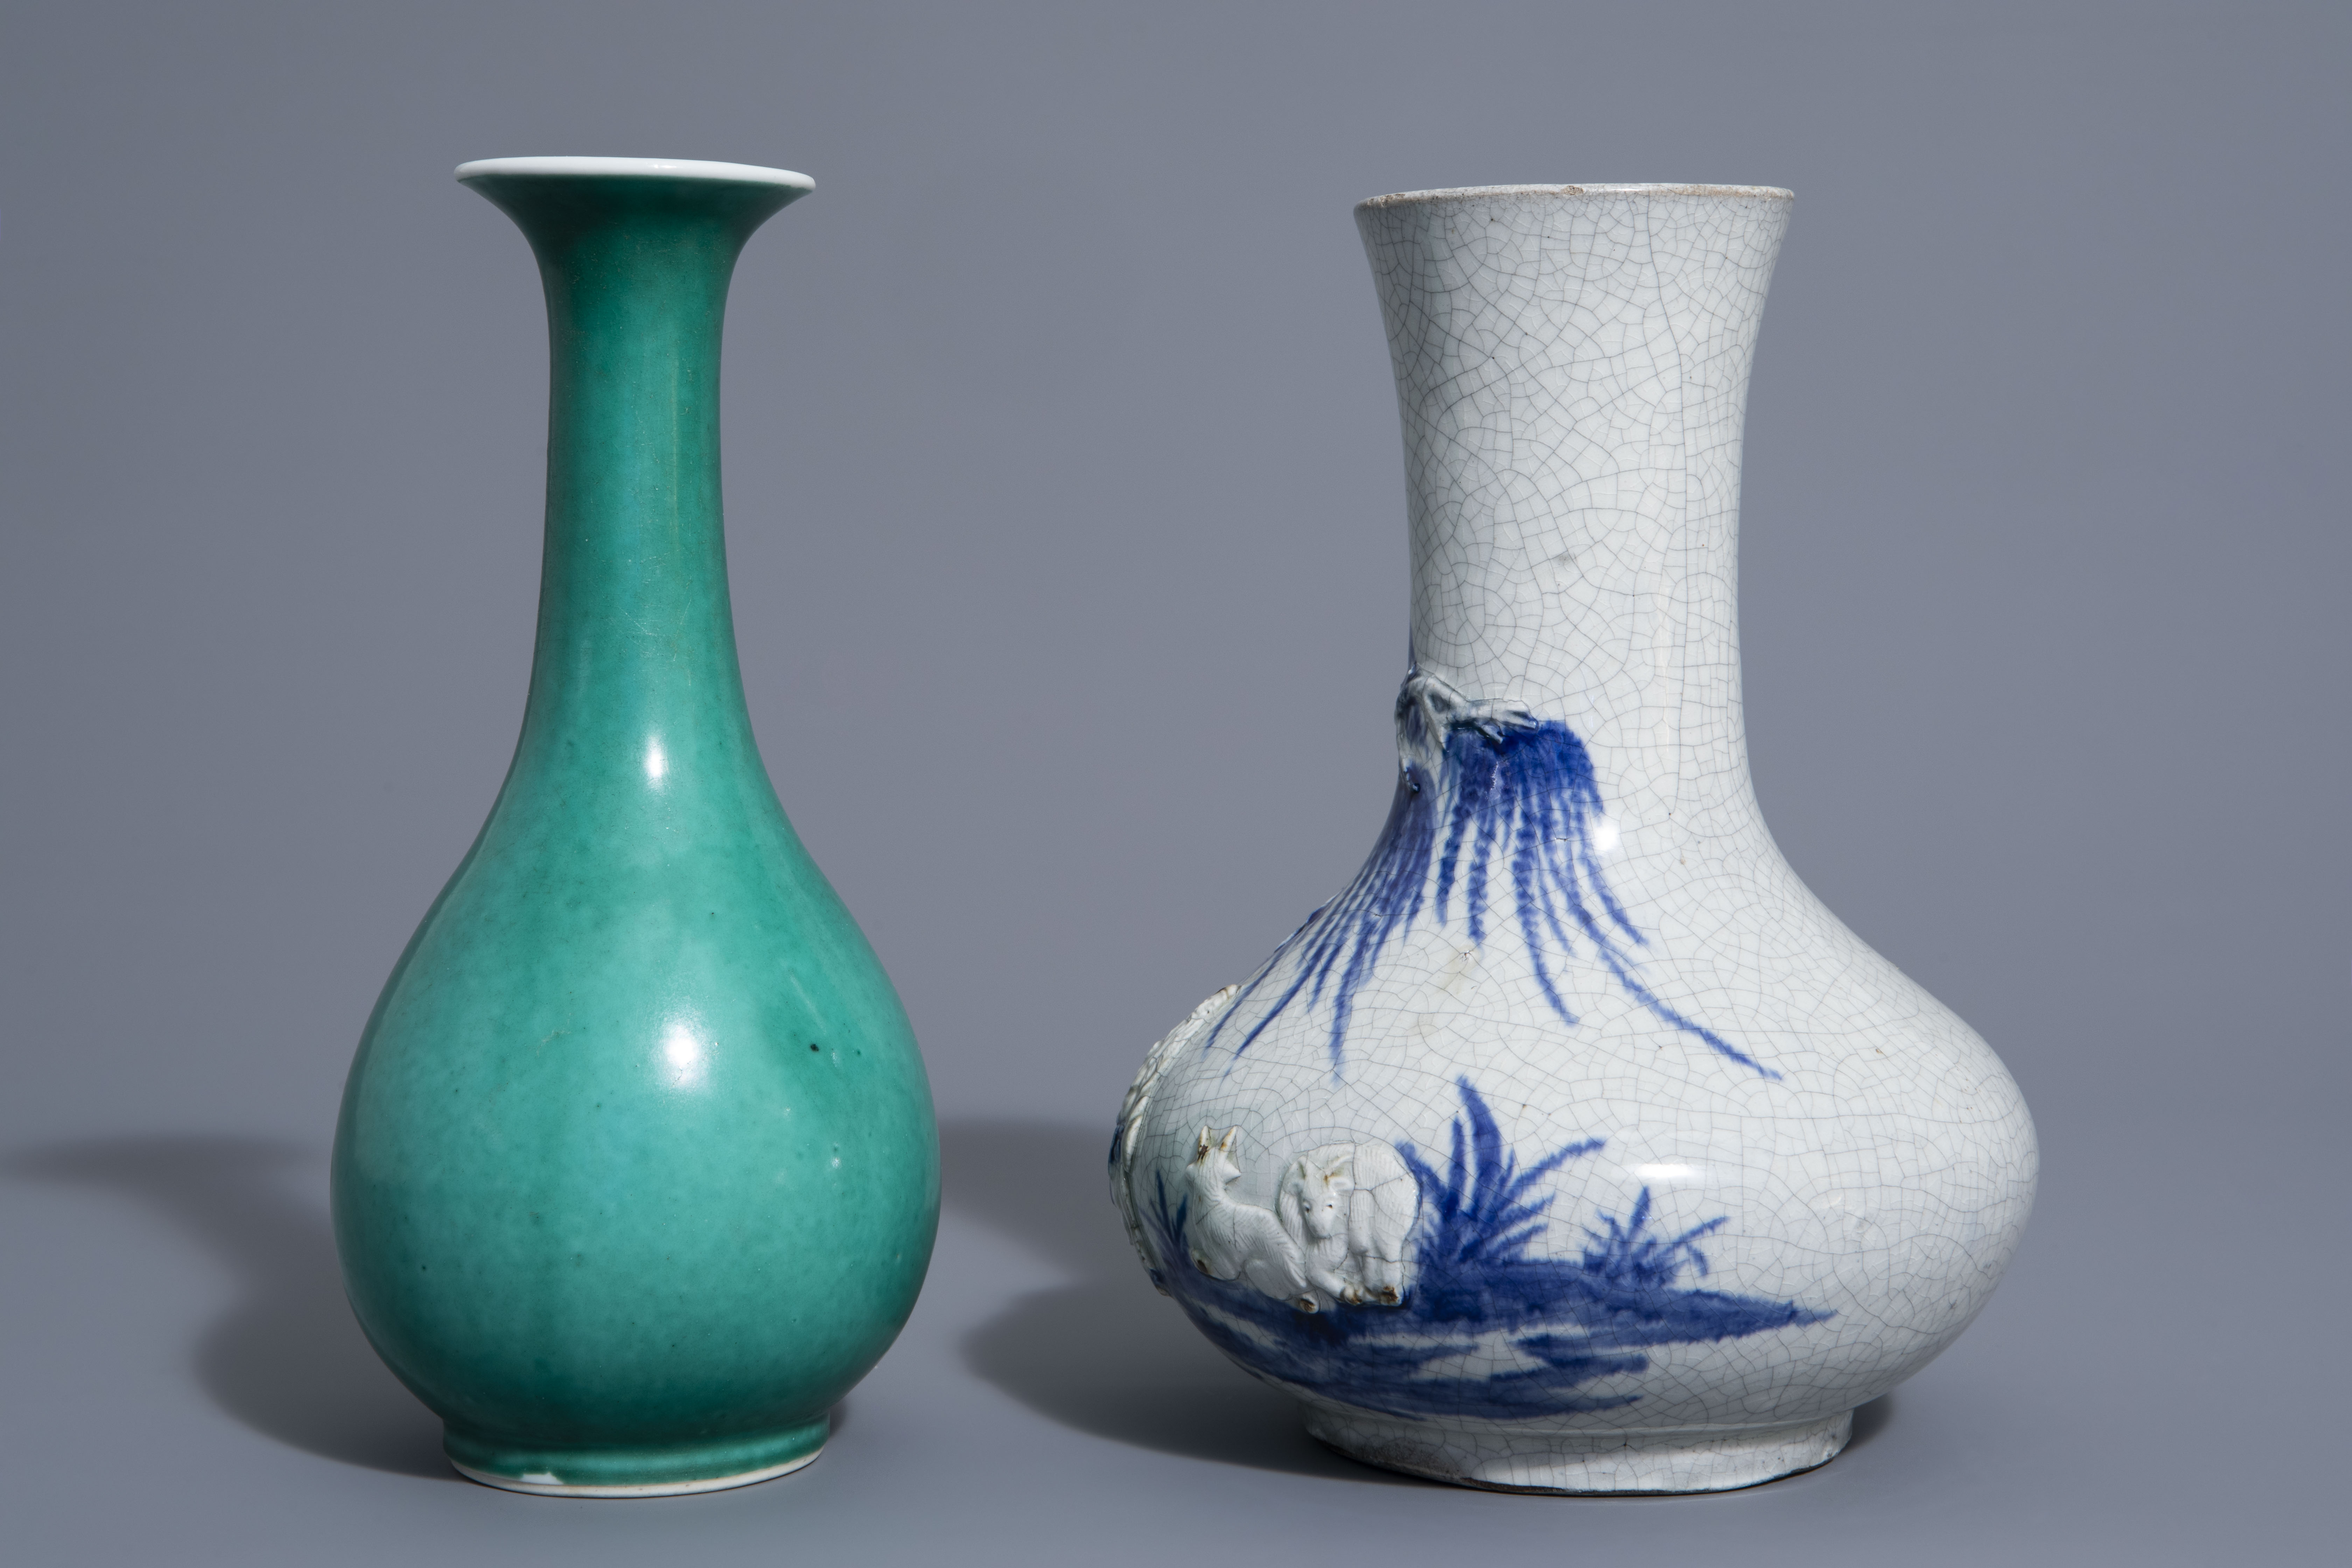 A Chinese blue & white crackle glazed vase, a monochrome green vase and a brushwasher, 19th/20th C. - Image 5 of 13